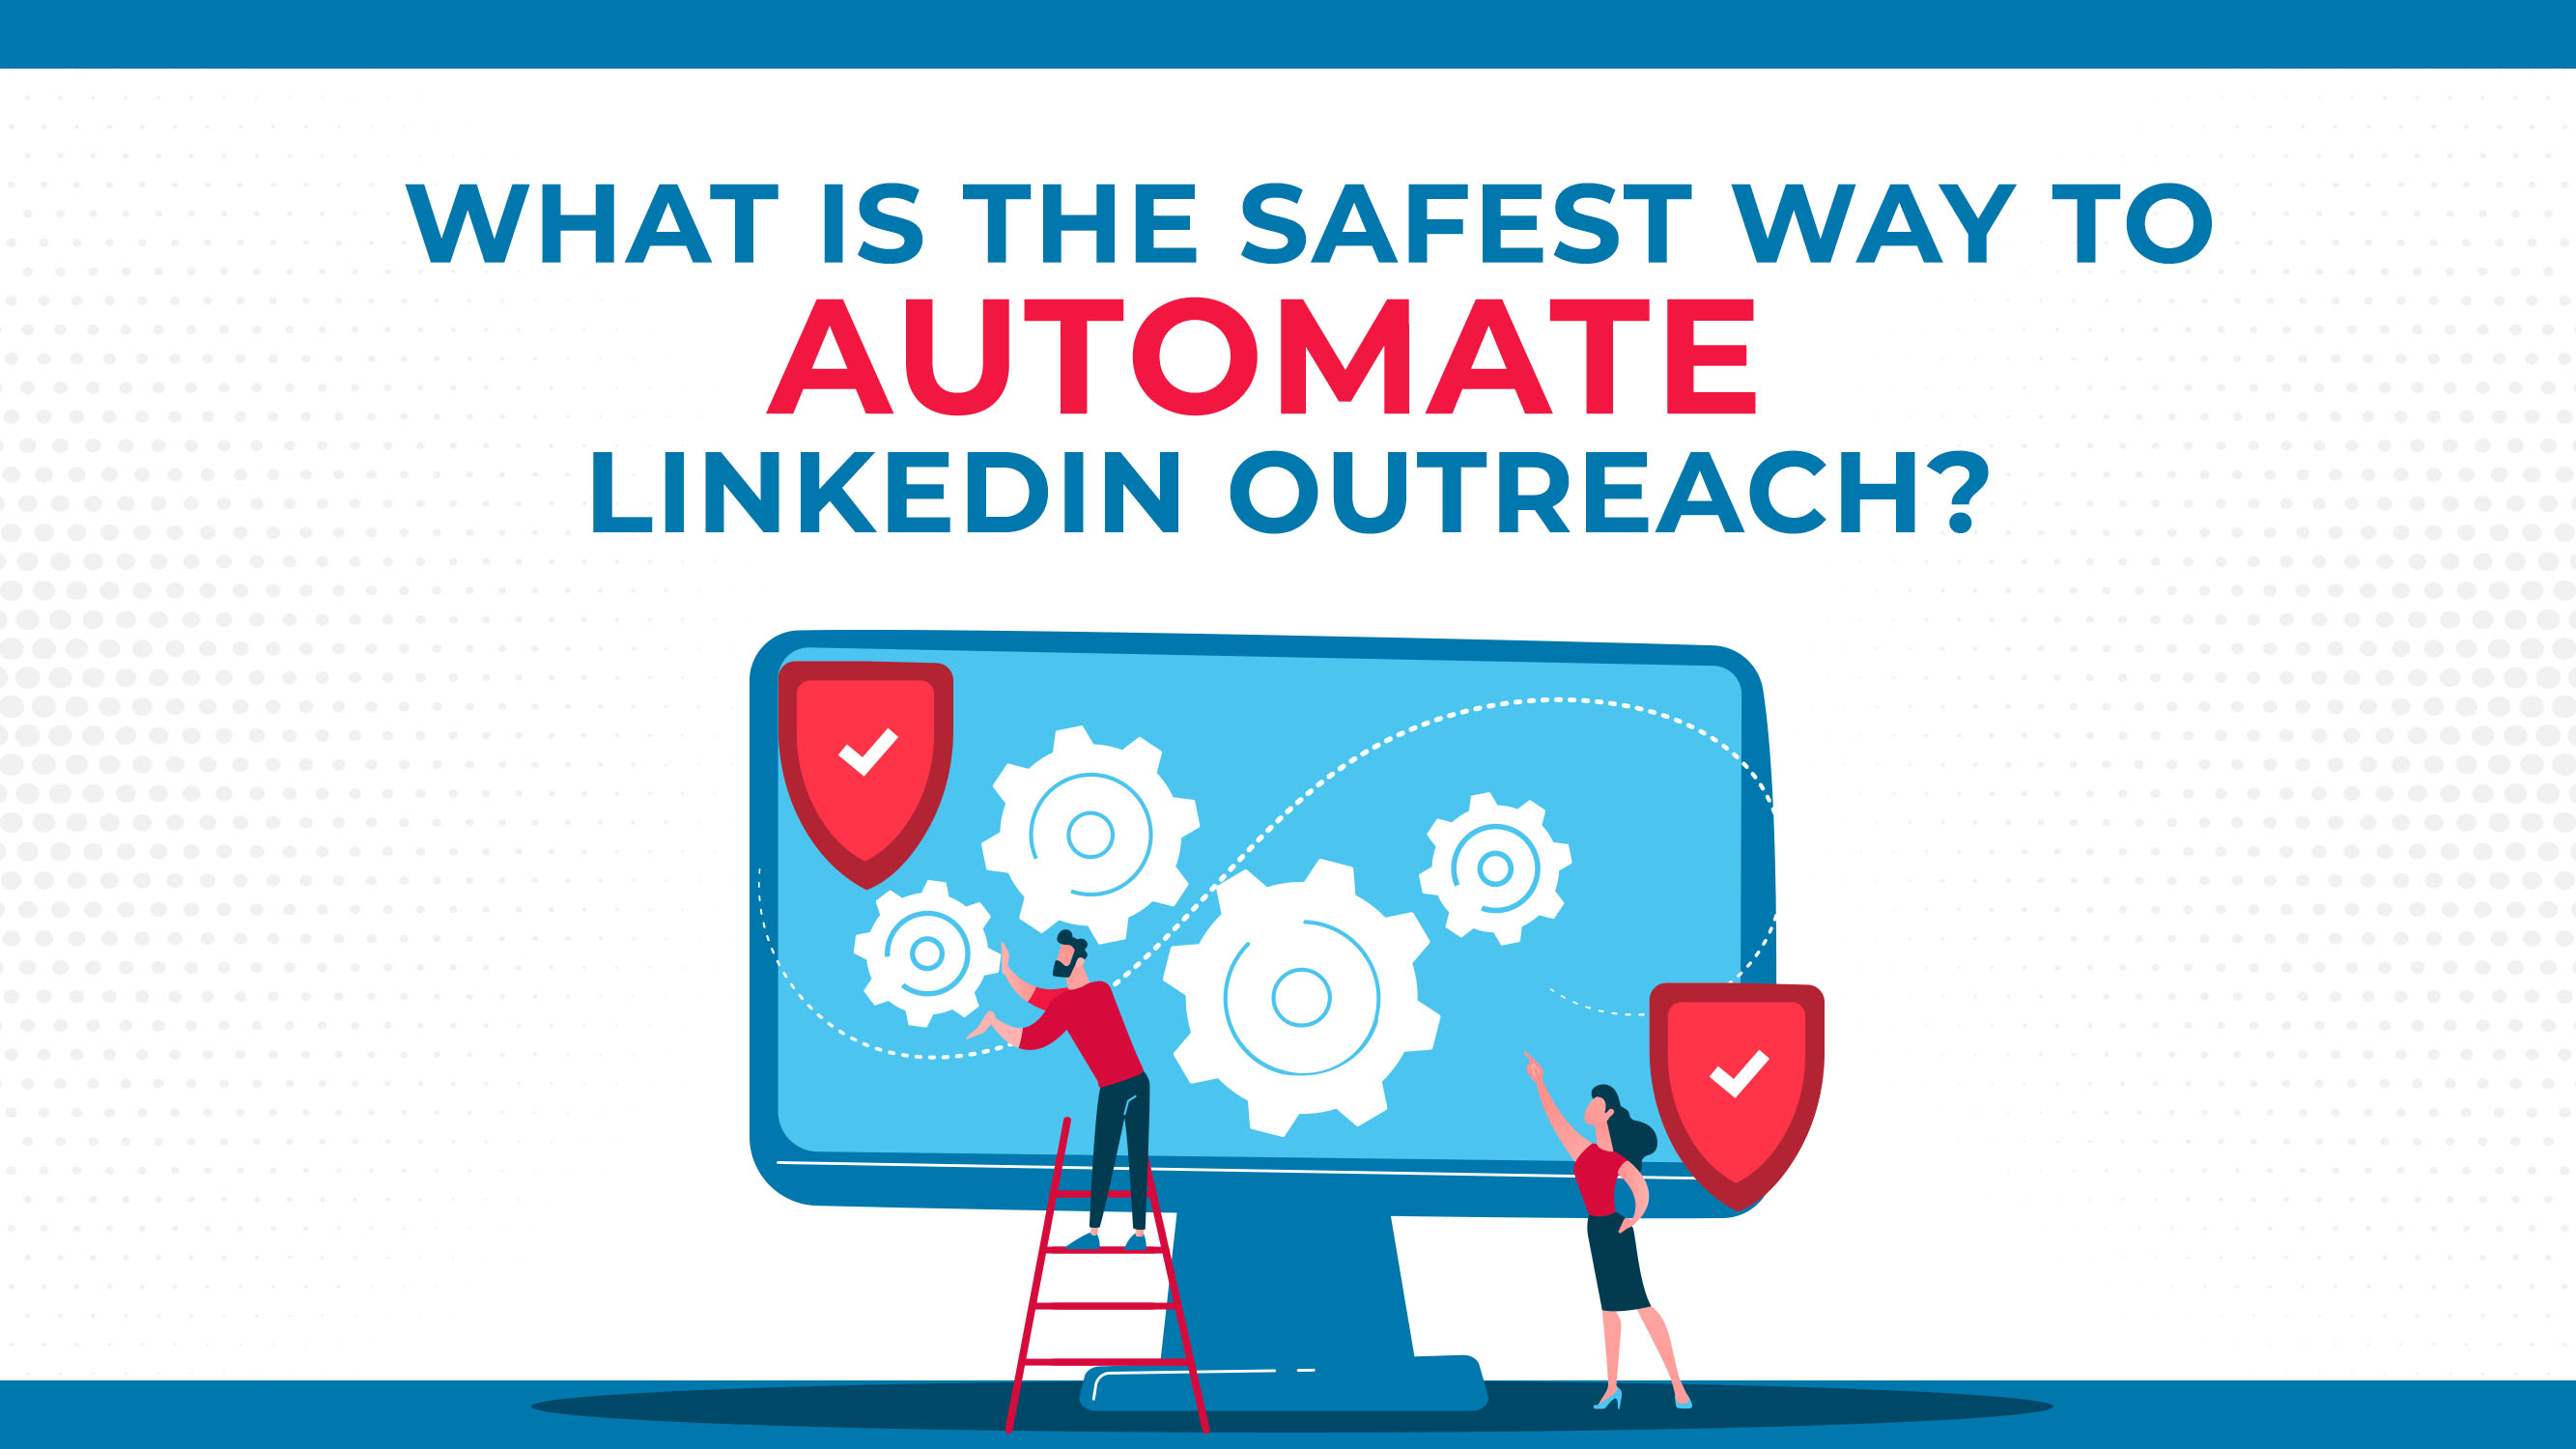 What Is The Safest Way To Automate LinkedIn Outreach?